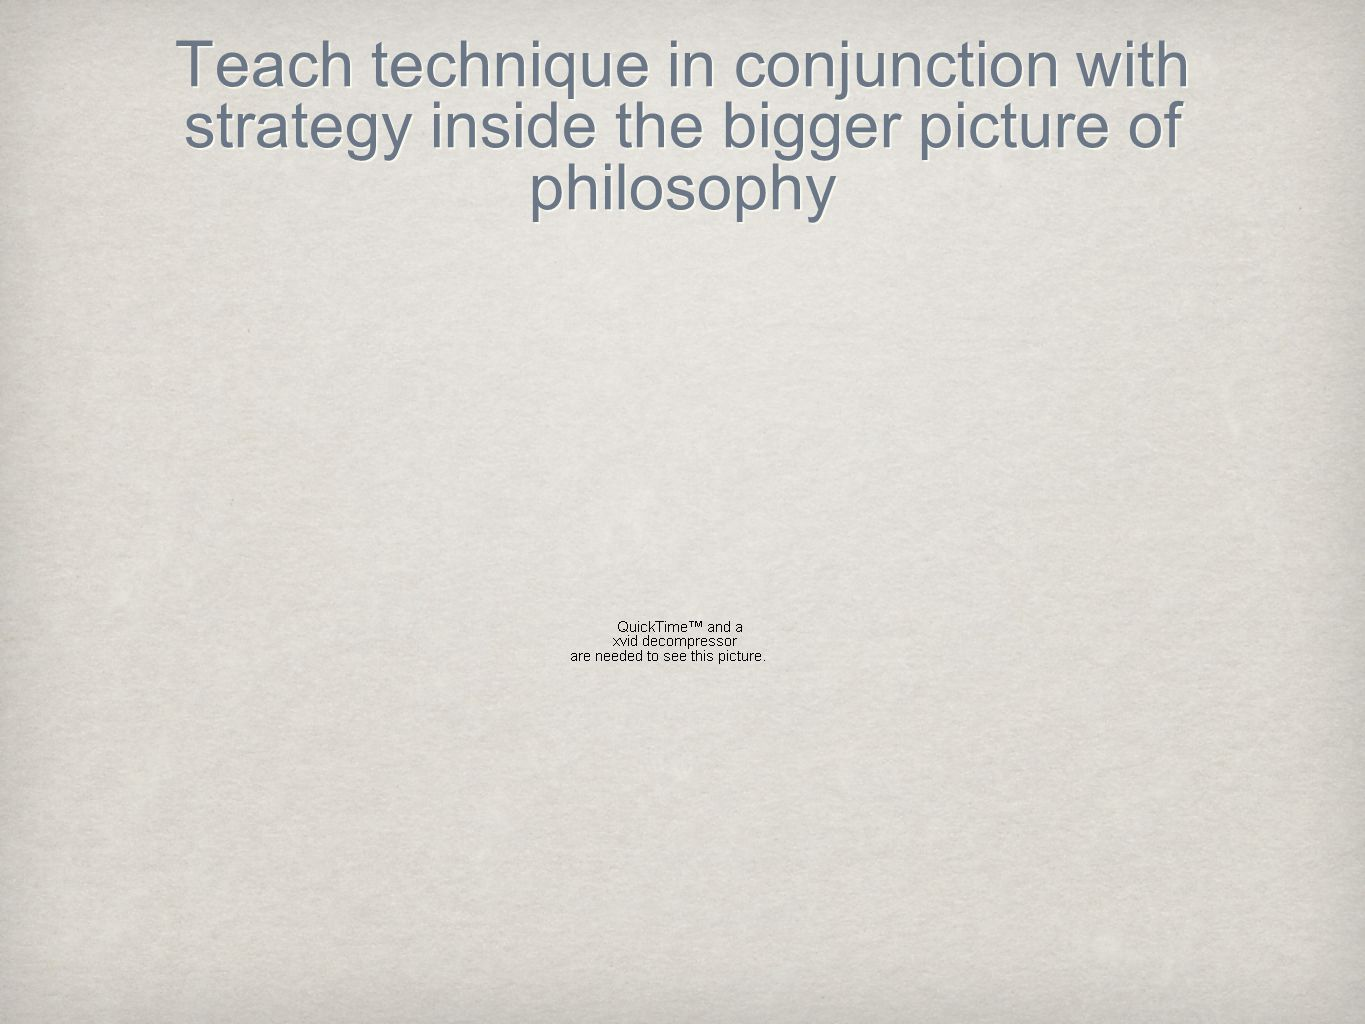 Teach technique in conjunction with strategy inside the bigger picture of philosophy